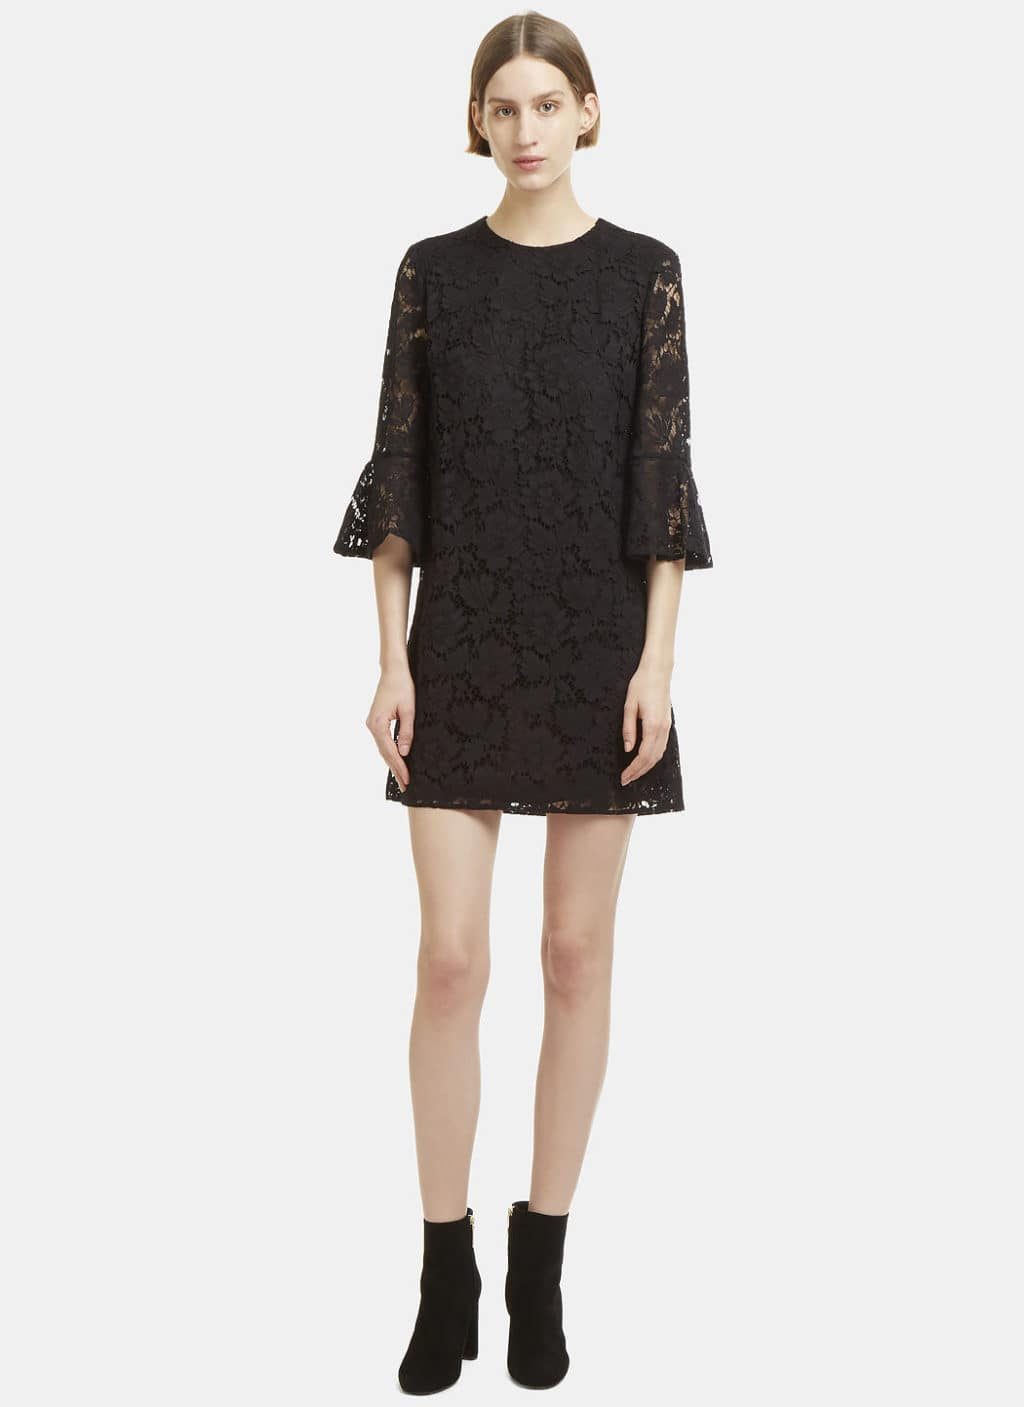 VALENTINO Floral Lace Black Dress